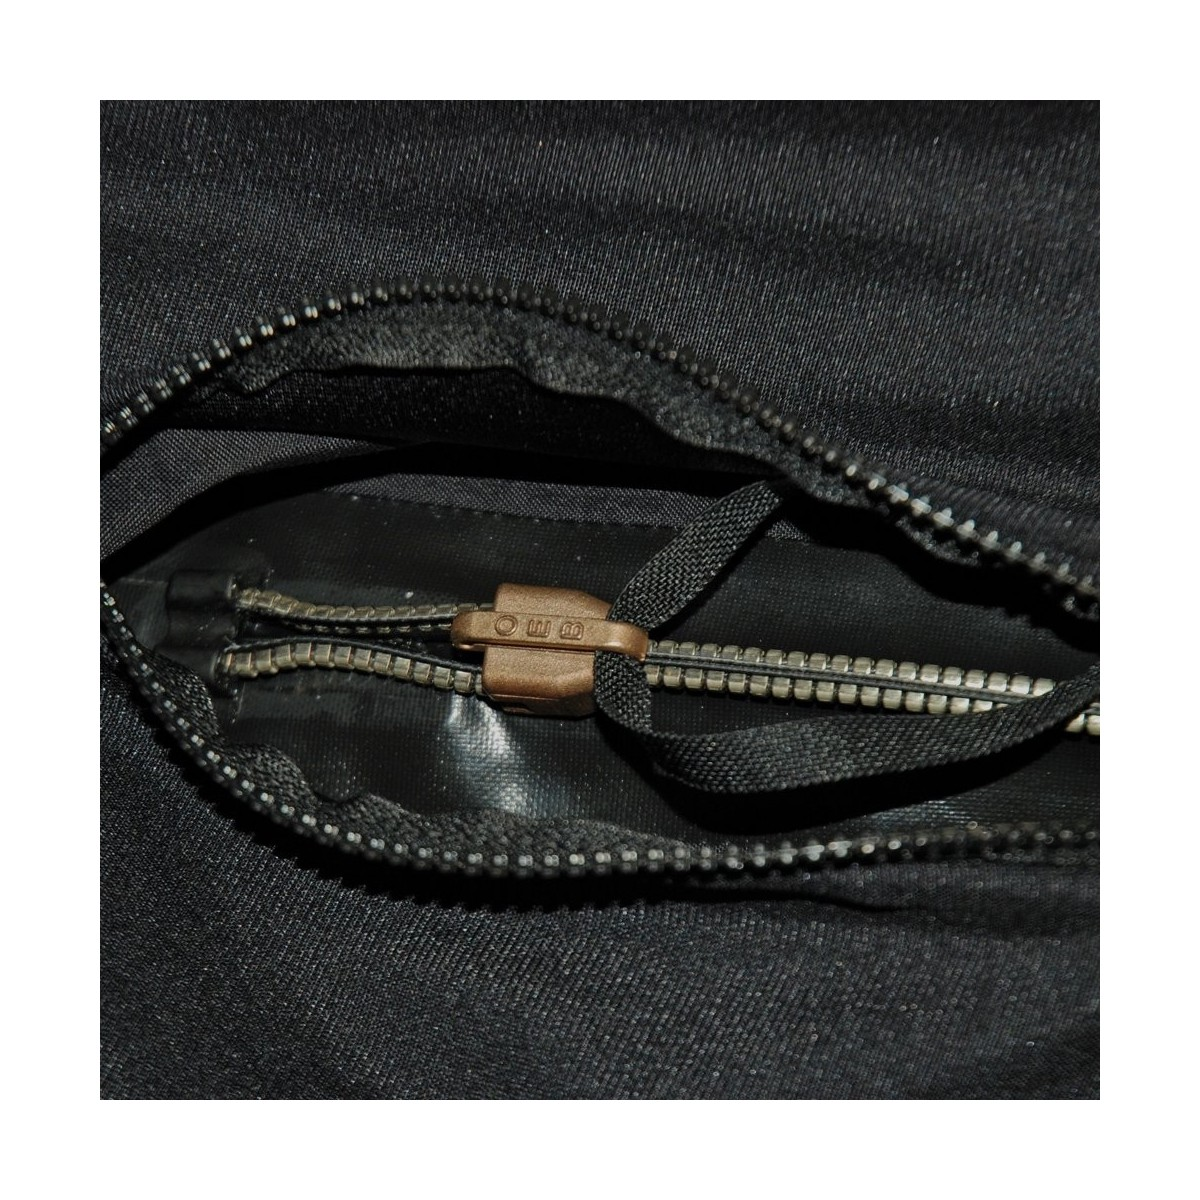 Aqua Lung 10-Inch Relief Zipper